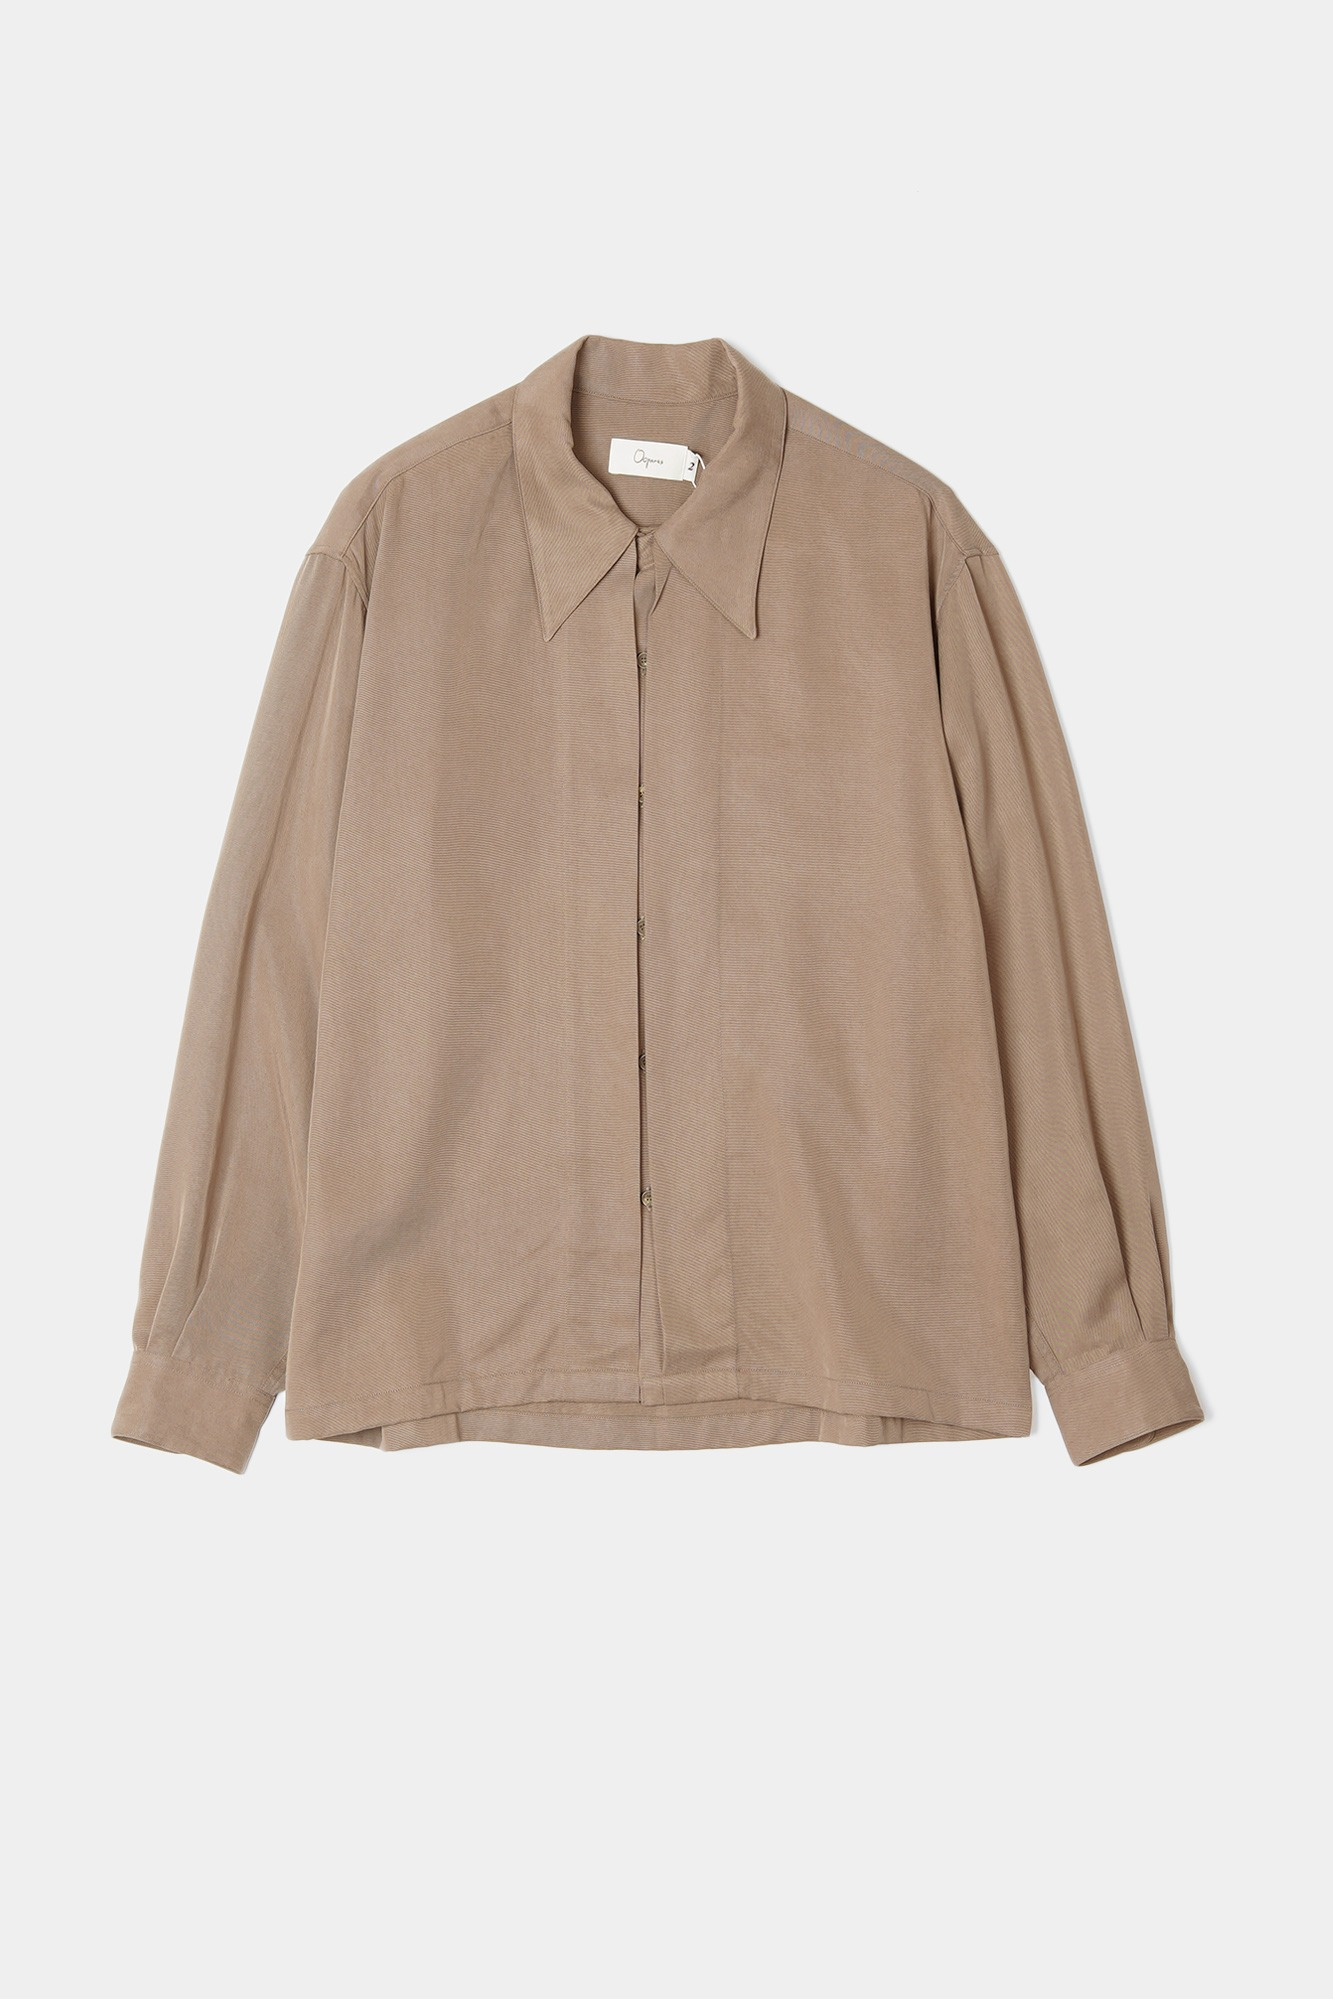 "OOPARTS Open collar tencel shirts ""Latte"""